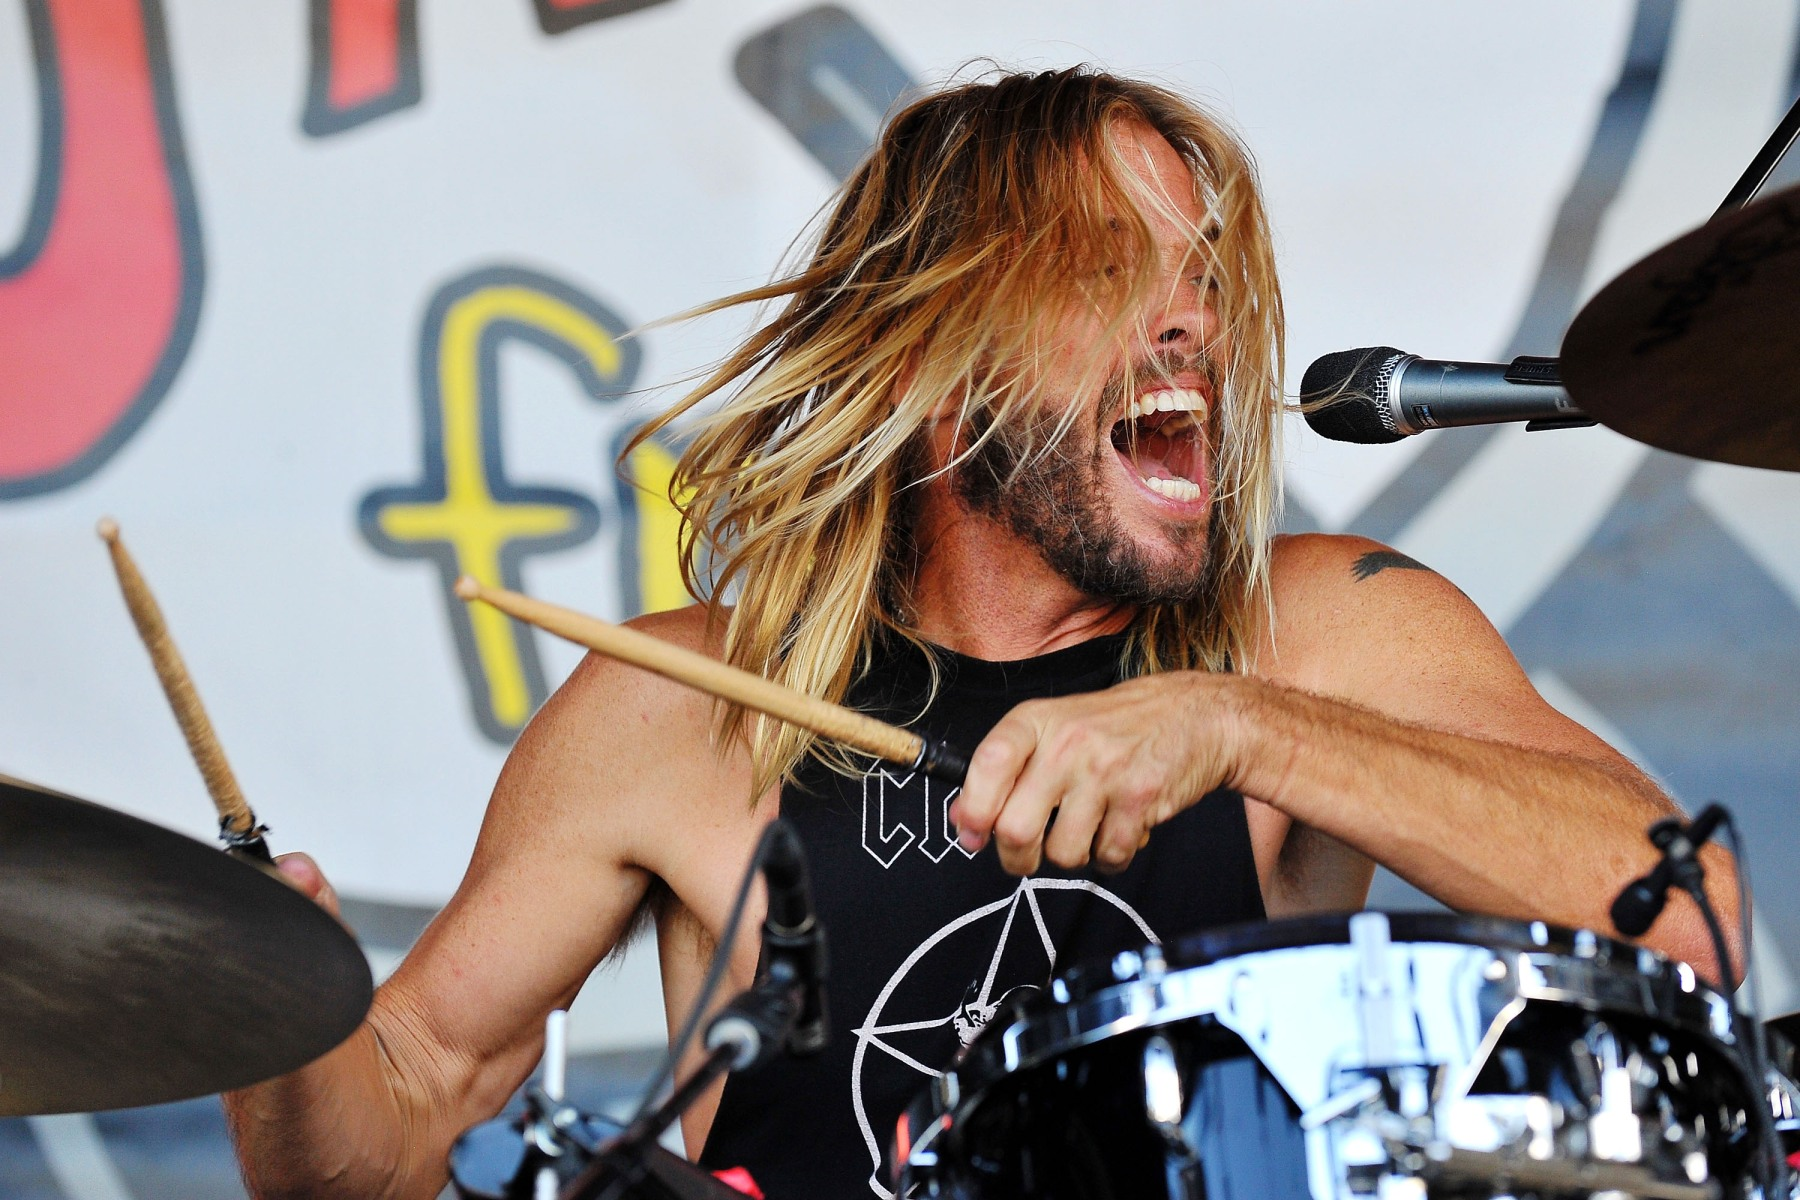 Taylor Hawkins performs with his band 'Chevy Metal' at Jack FM's 11th Show at Irvine Meadows Amphitheatre on September 23, 2016 in Irvine, California. (Jerod Harris/Getty Images)